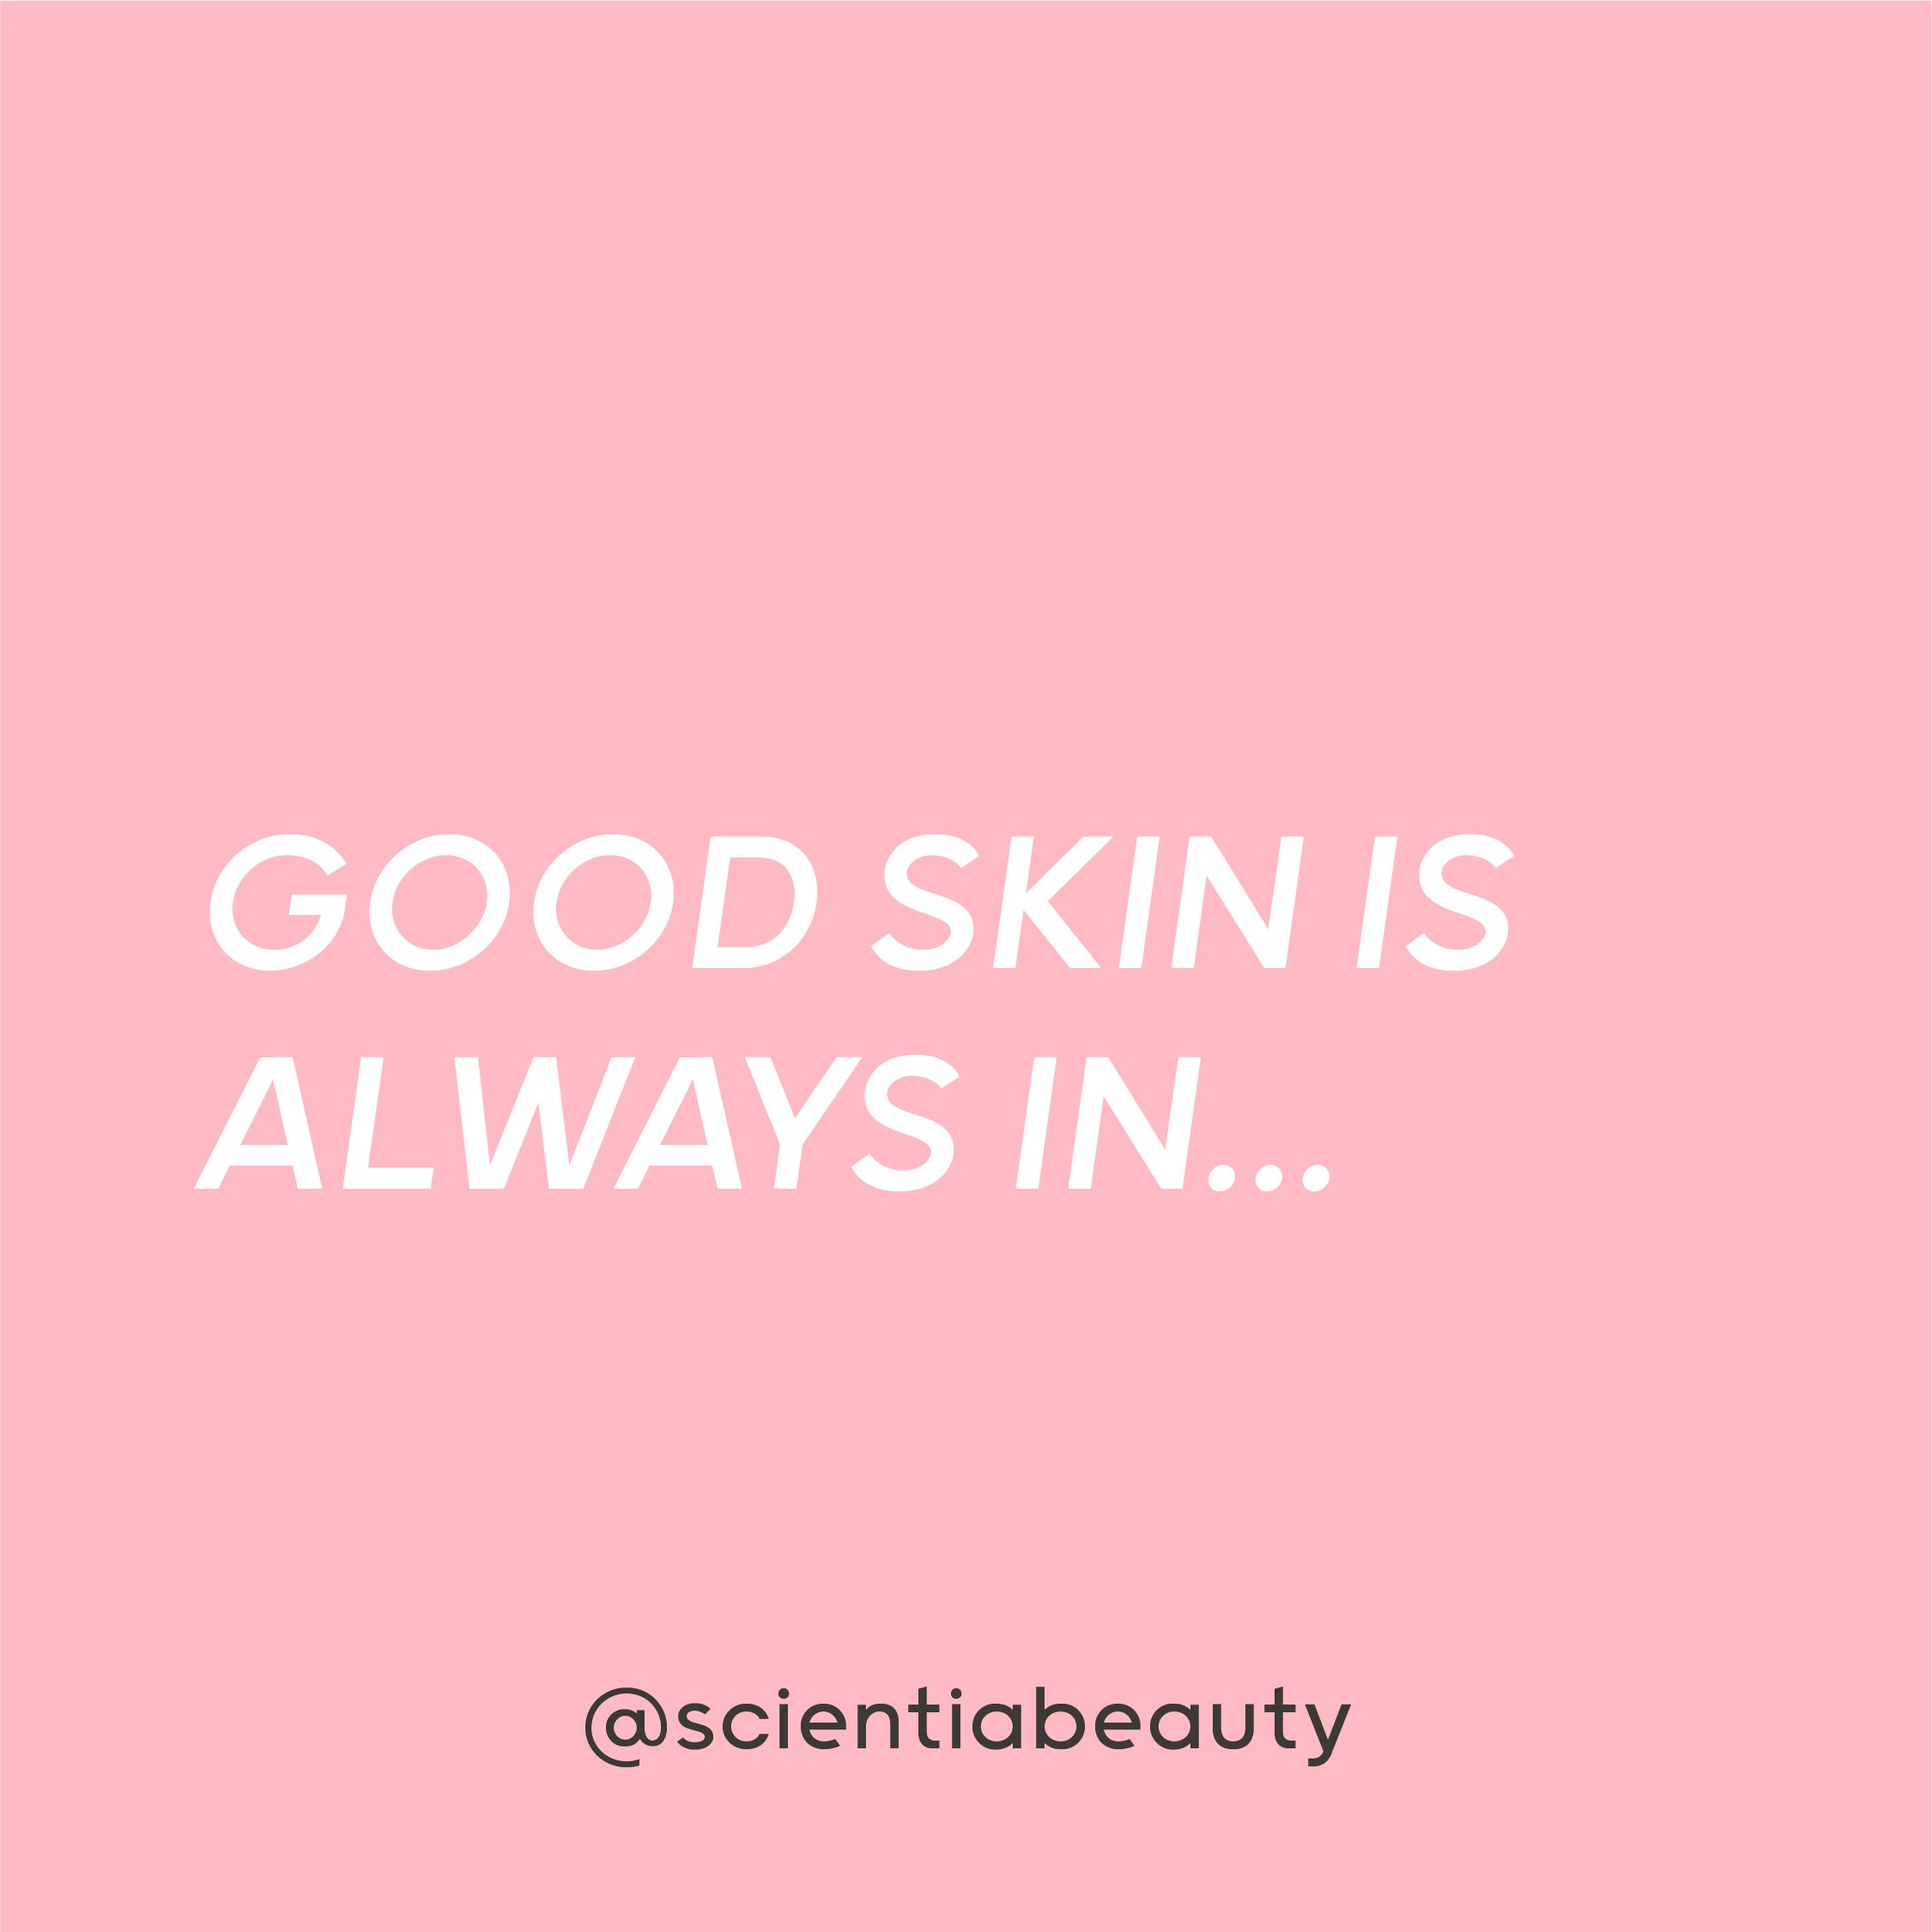 Is there a correct order to apply skincare products?